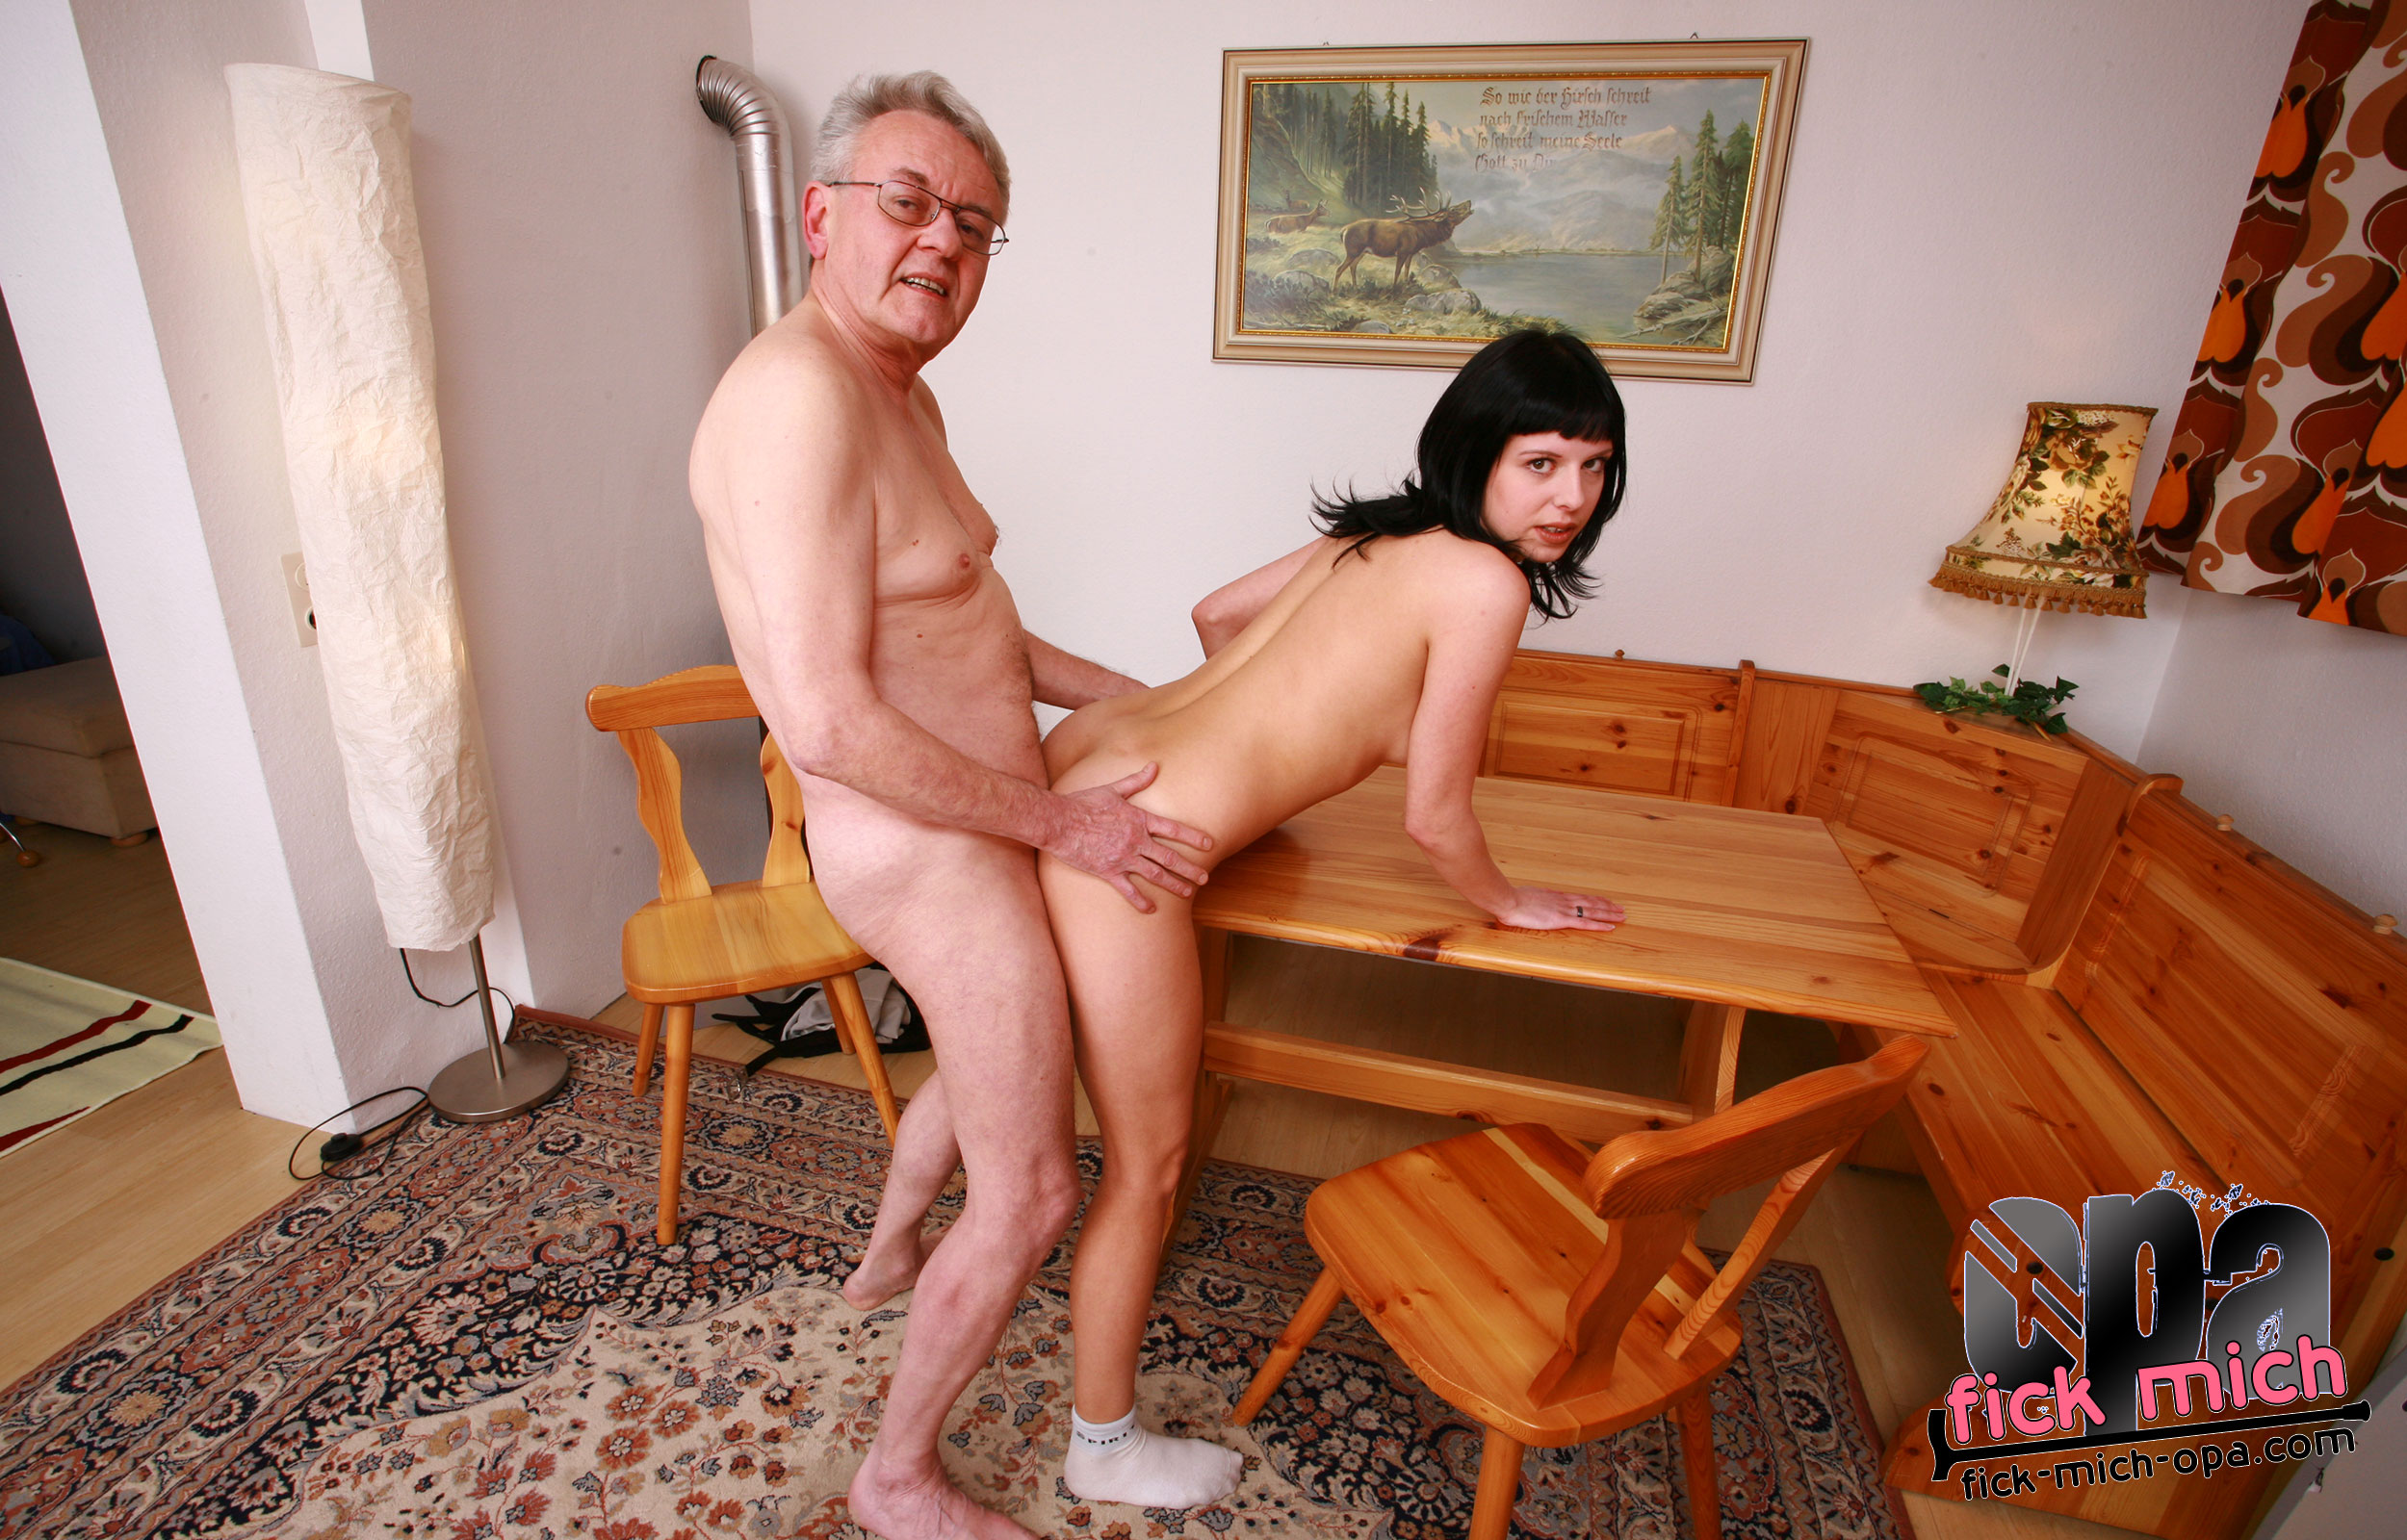 Free online porn images in deutsch opa category hottest sex images